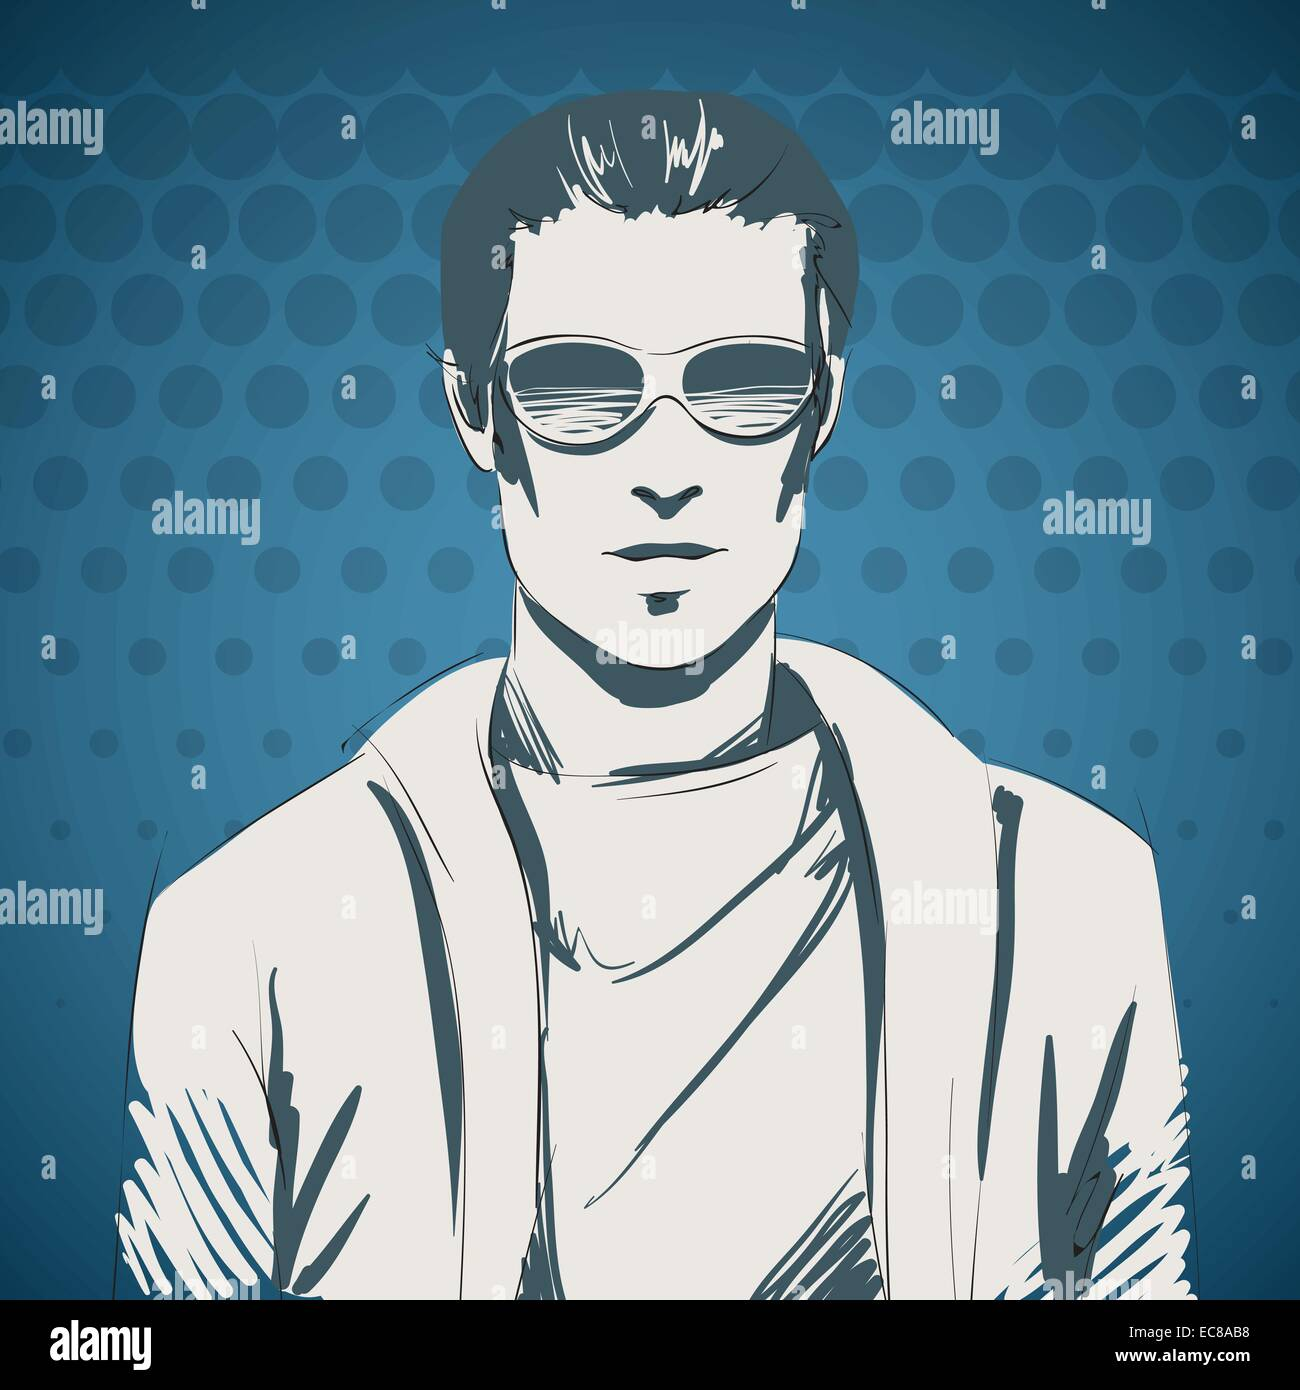 3bf45b3d504 Stylish young guy portrait wearing glasses and pullover